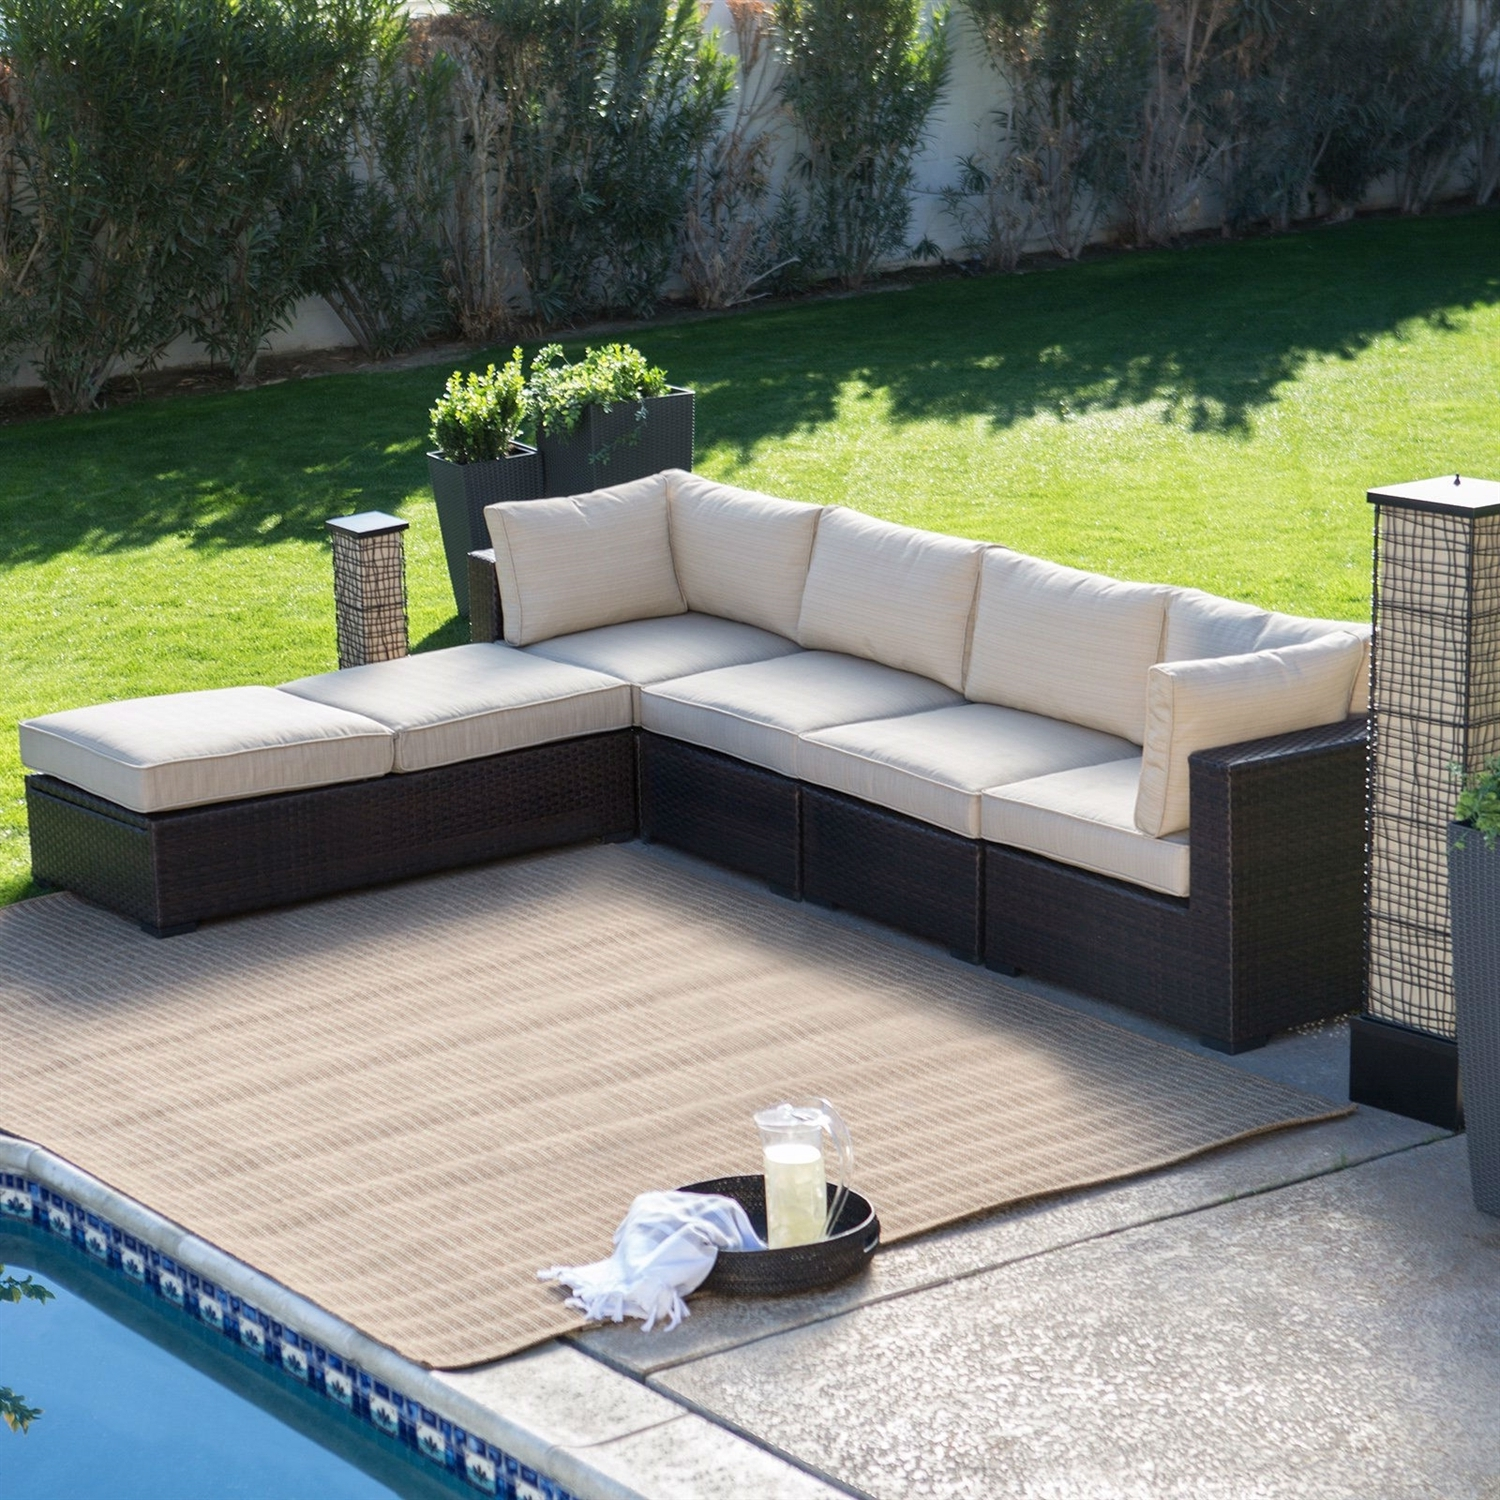 Chair : Outdoor Wicker Resin Piece Sectional Sofa Patio Furniture In Most Recent Patio Sectional Conversation Sets (View 10 of 20)